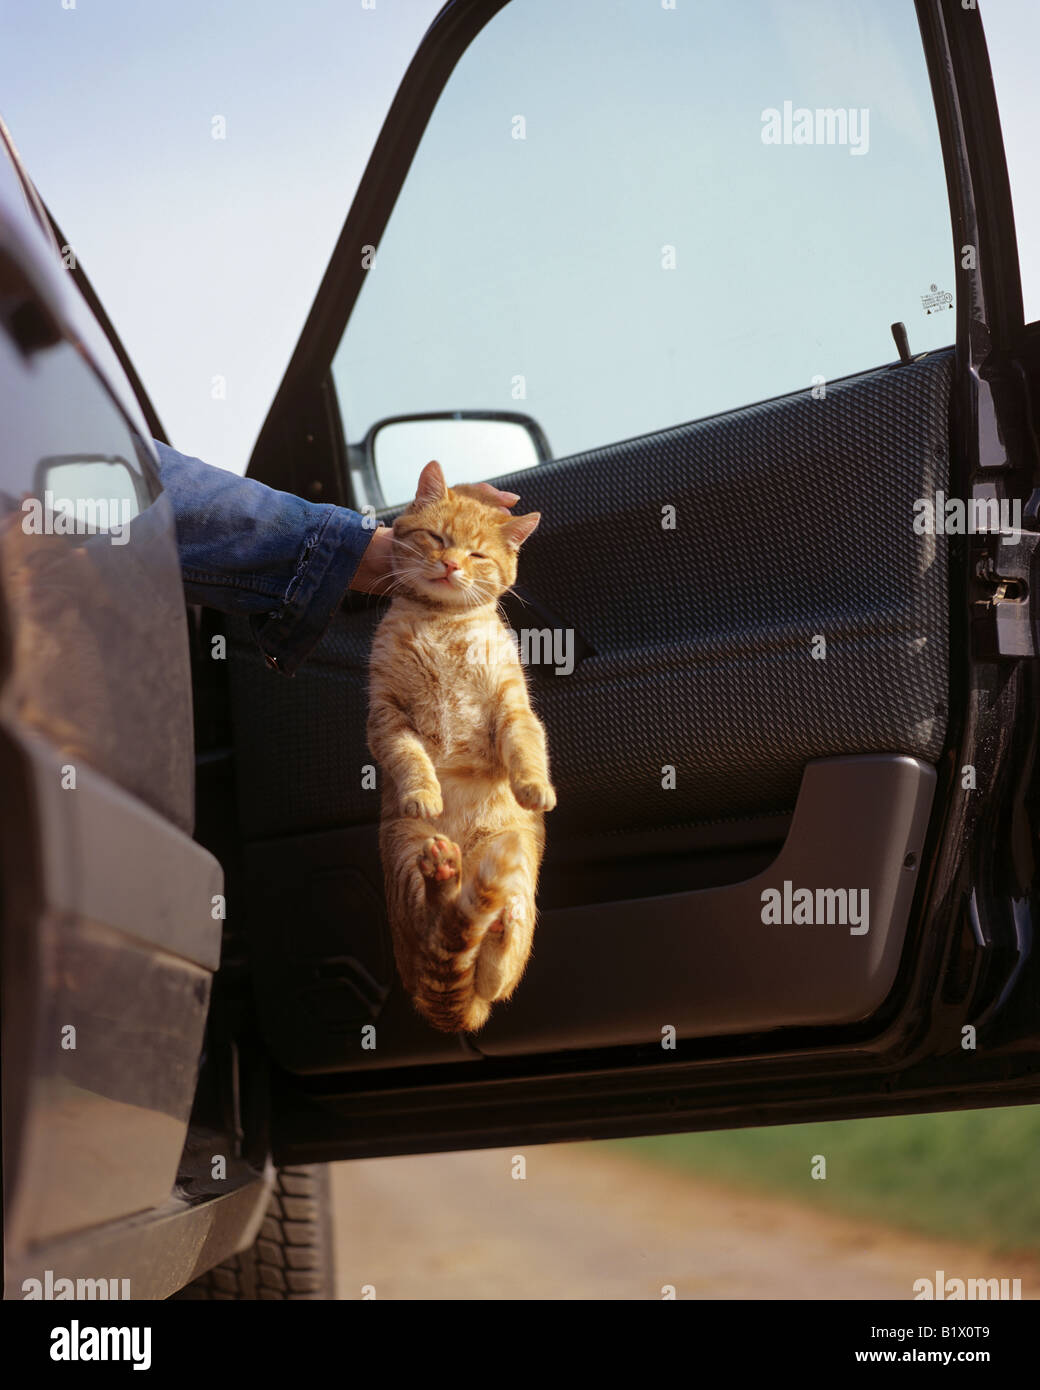 Abandoning A Cat Stock Photo 18396457